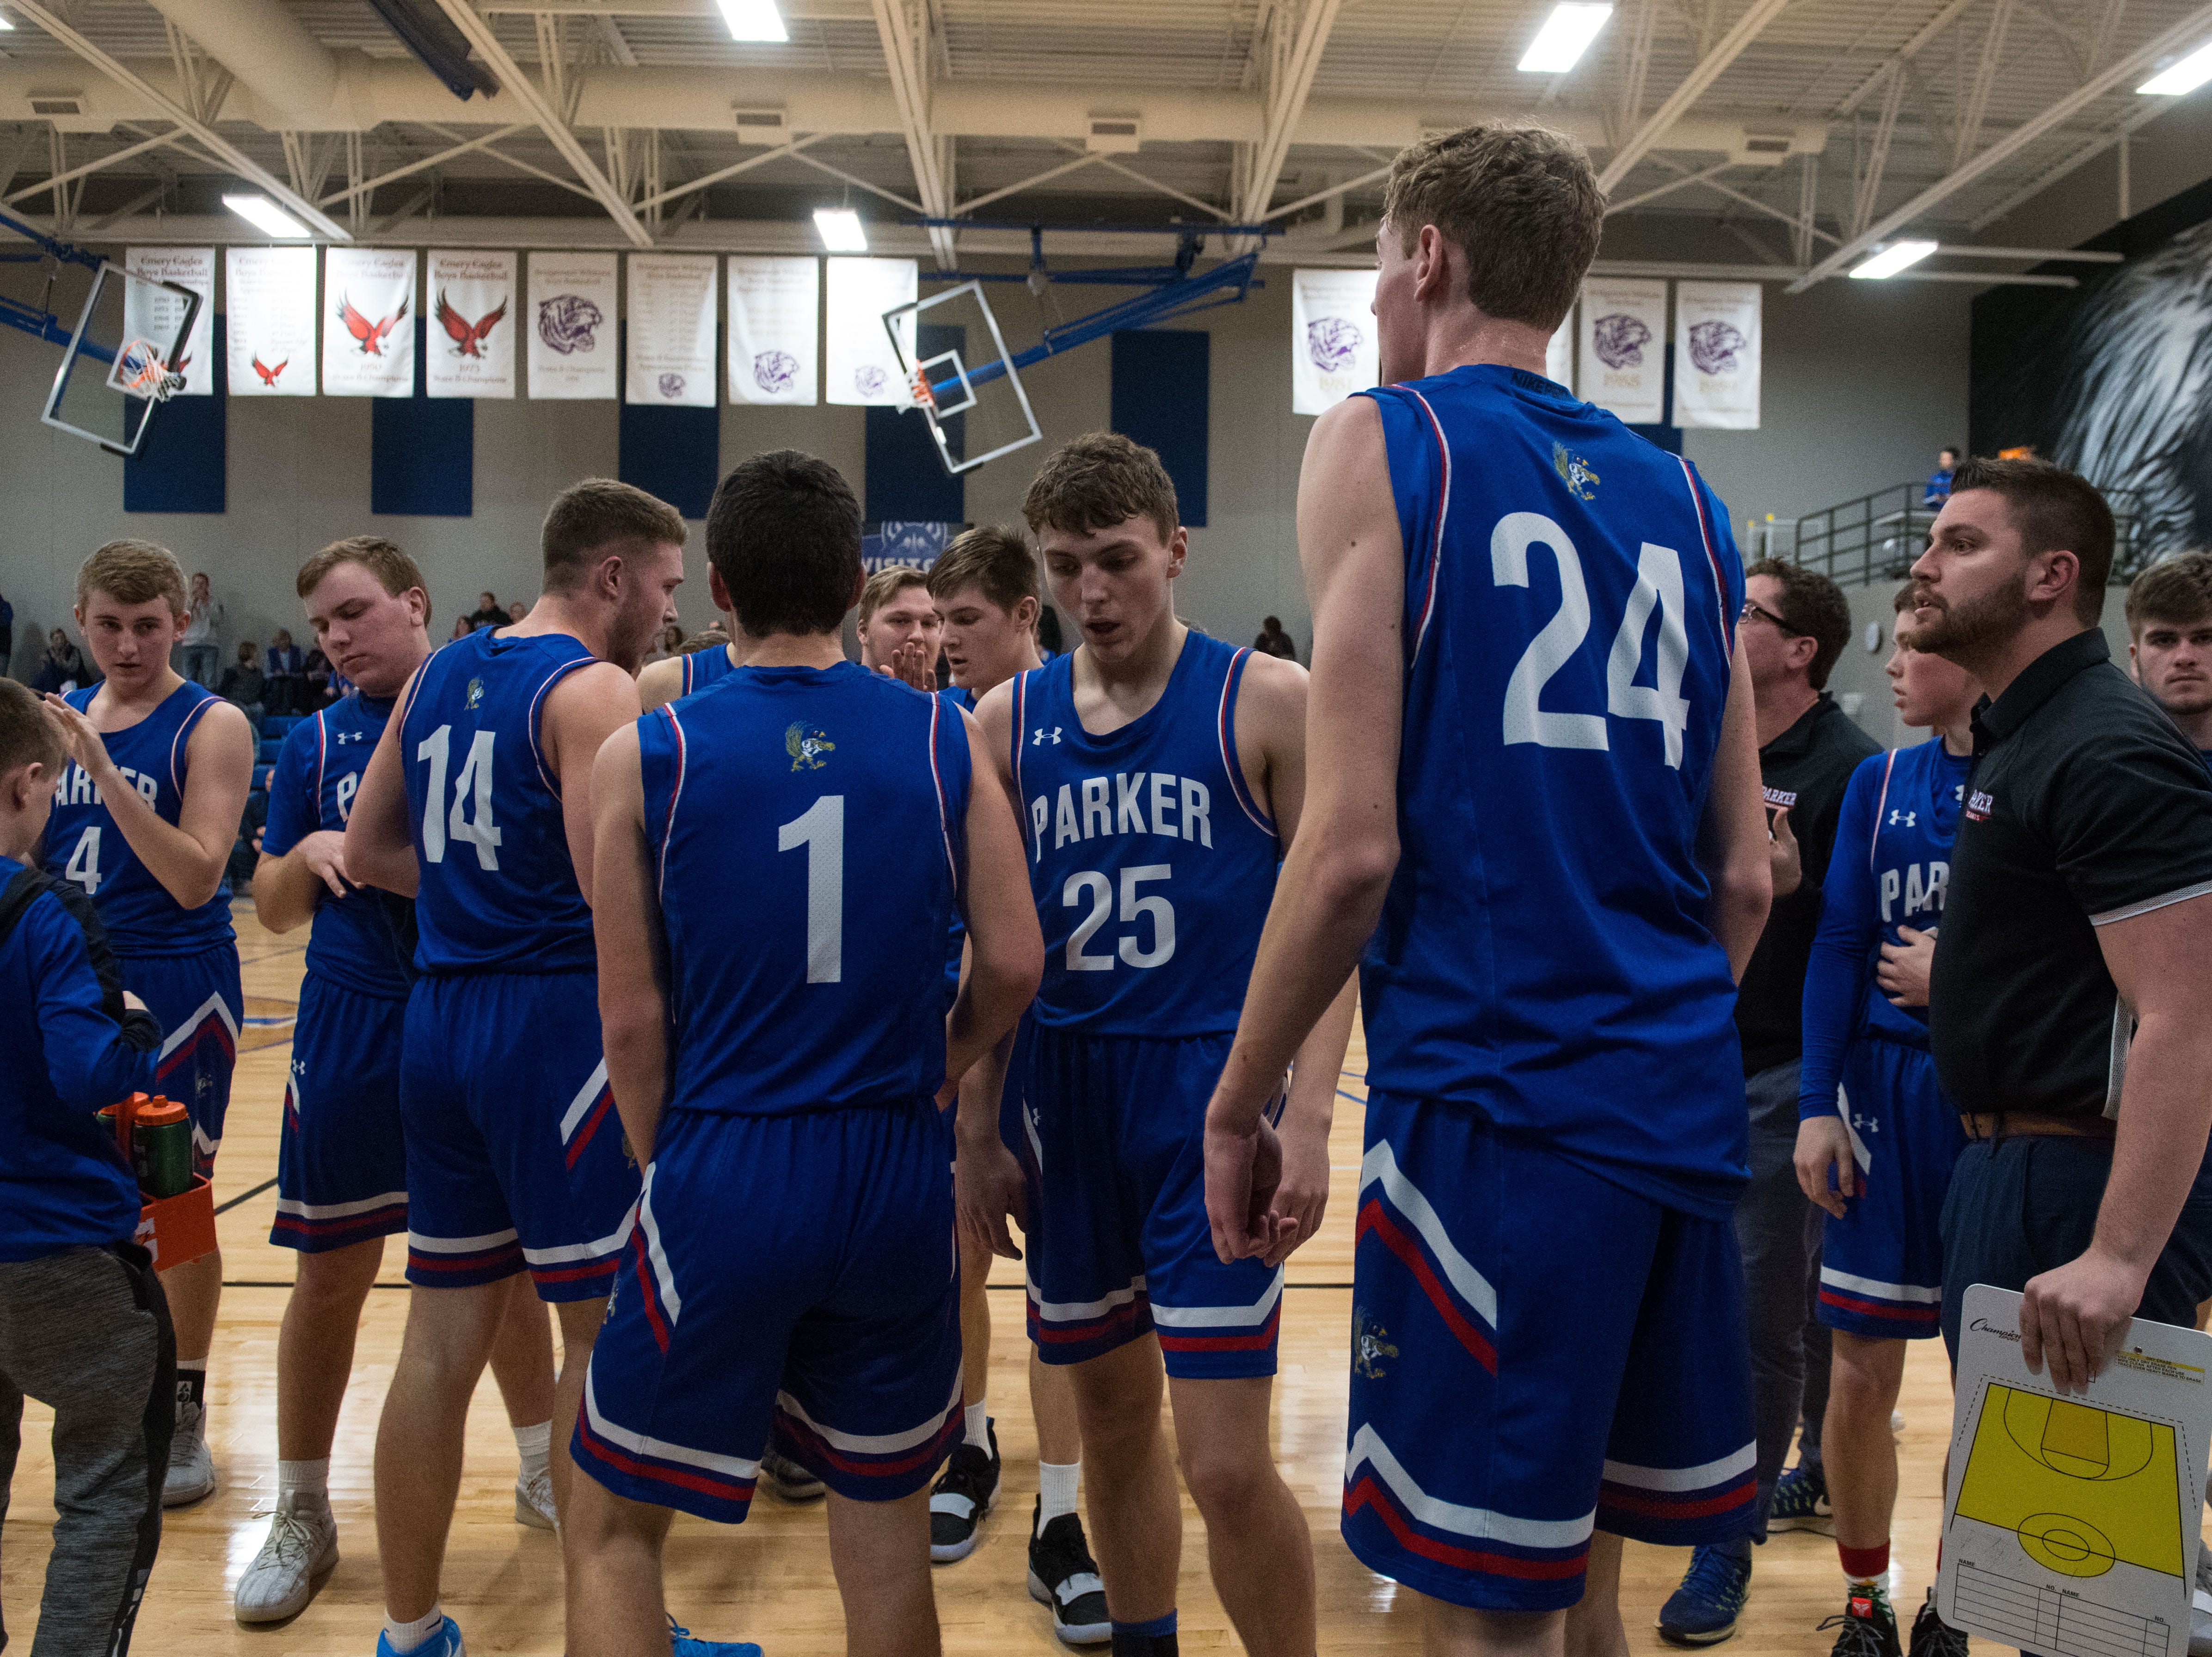 Parker team huddles during a game against Bridgewater Emery, Friday, Feb. 15, 2019 in Emery, S.D.